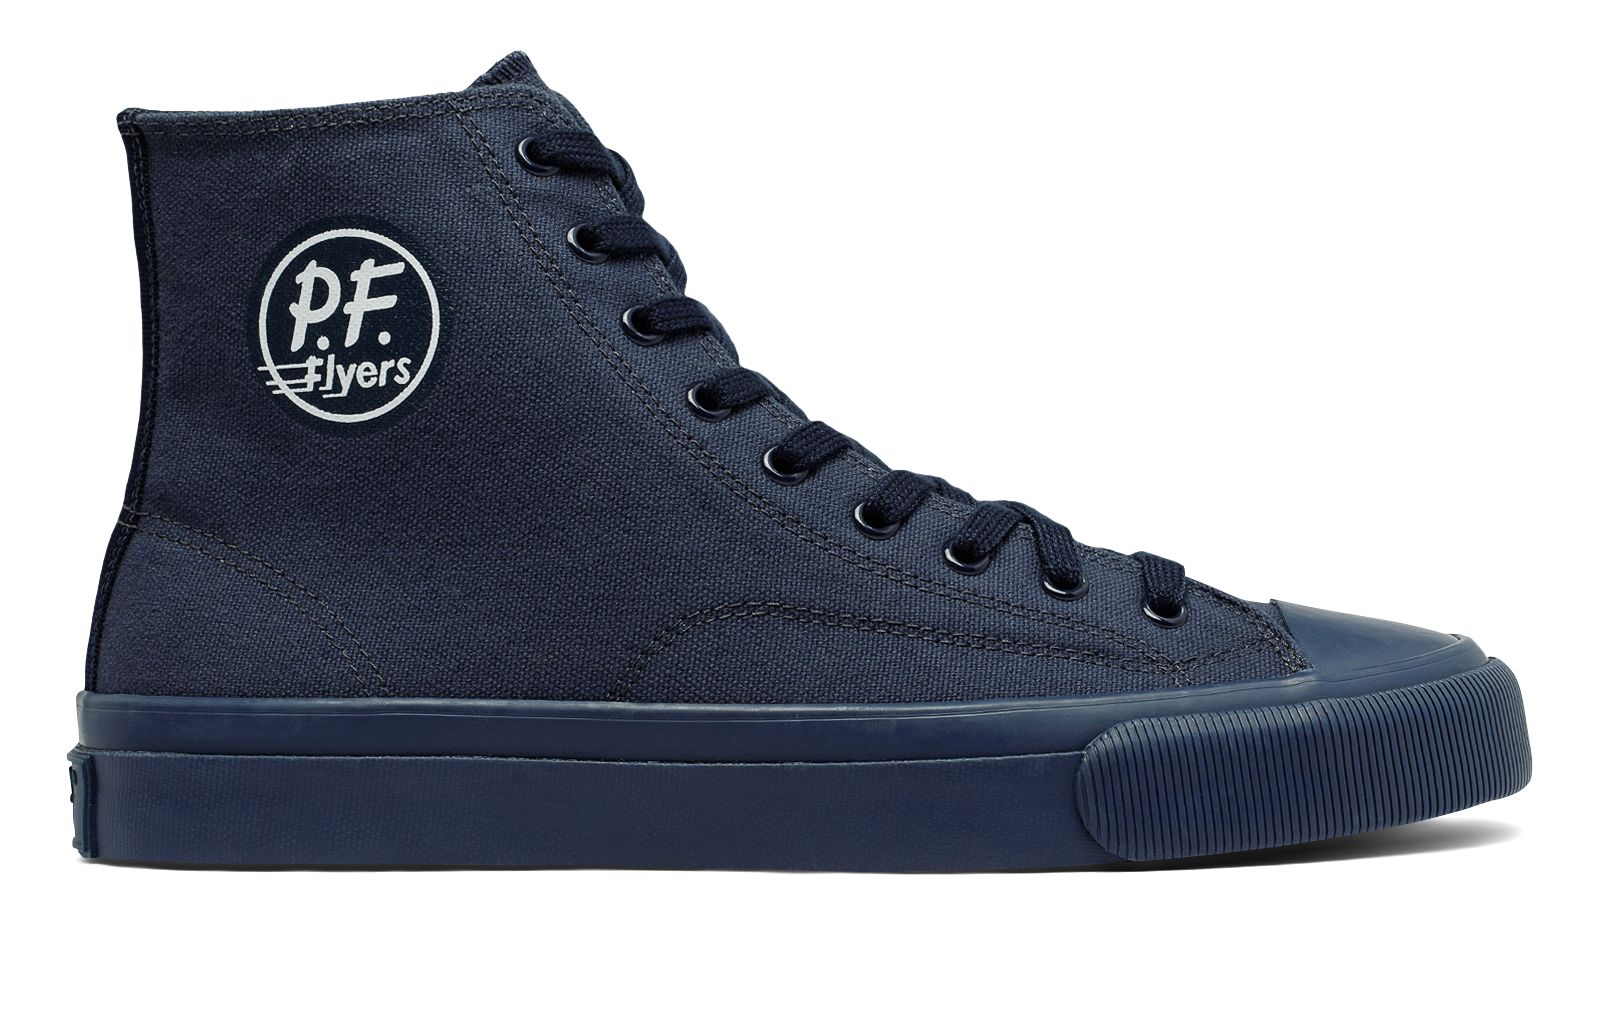 PF Flyers All American Hi Mono Shoes